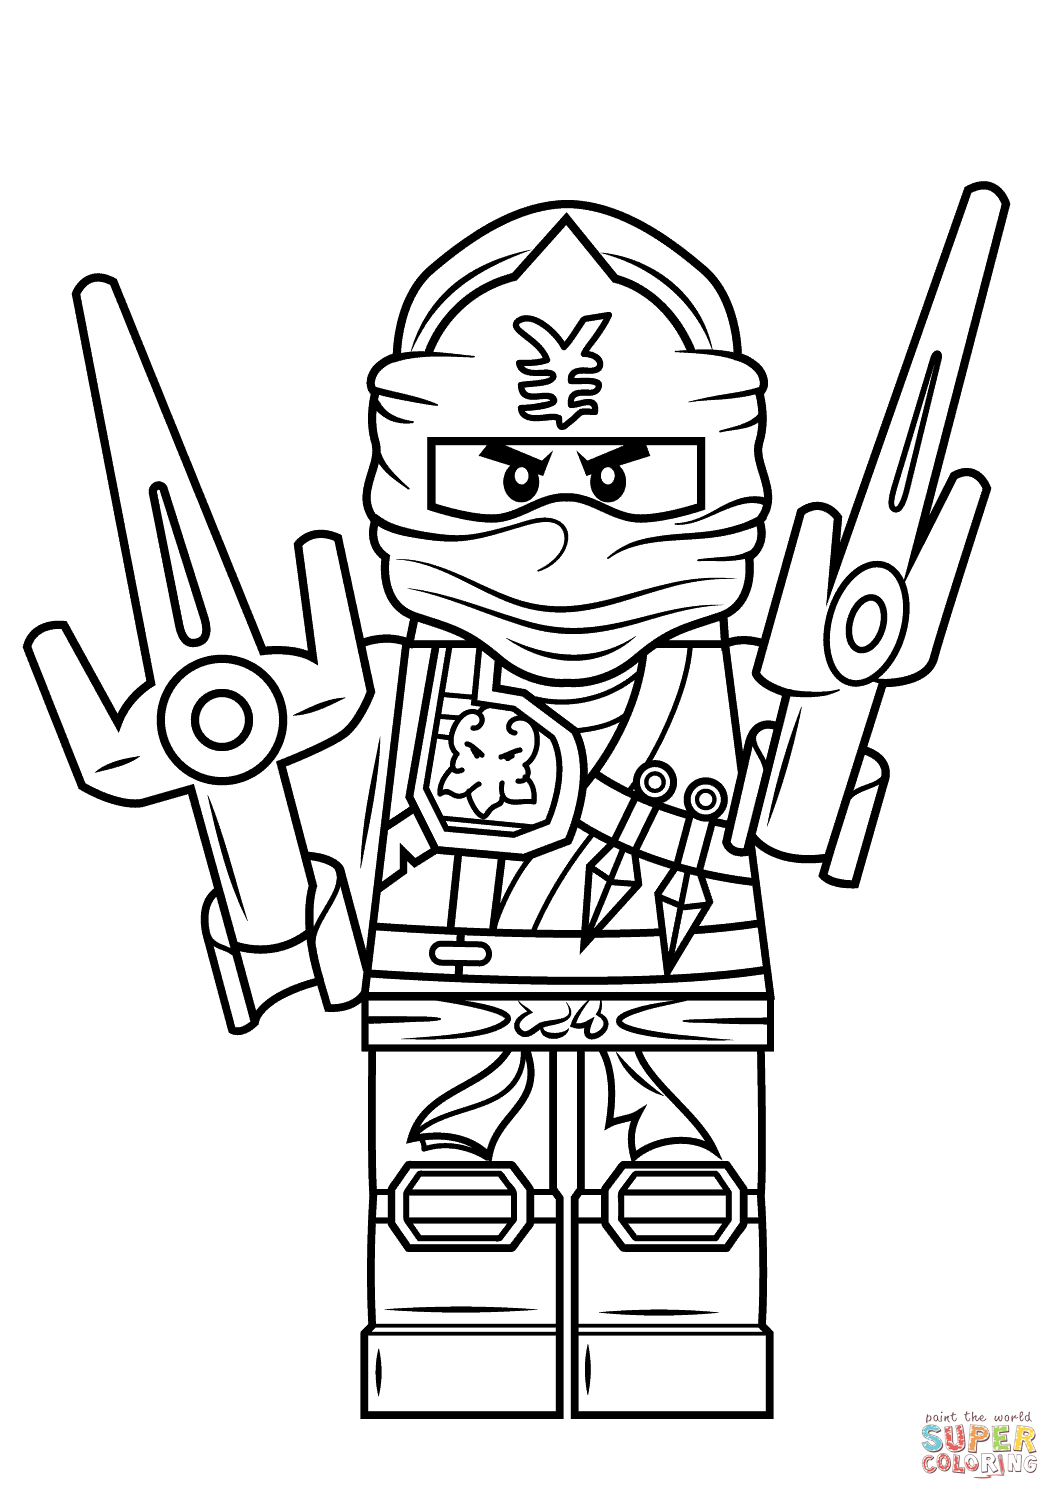 1060x1500 Drawing Lego Ninjago Coloring Games To Color Colinbookman New